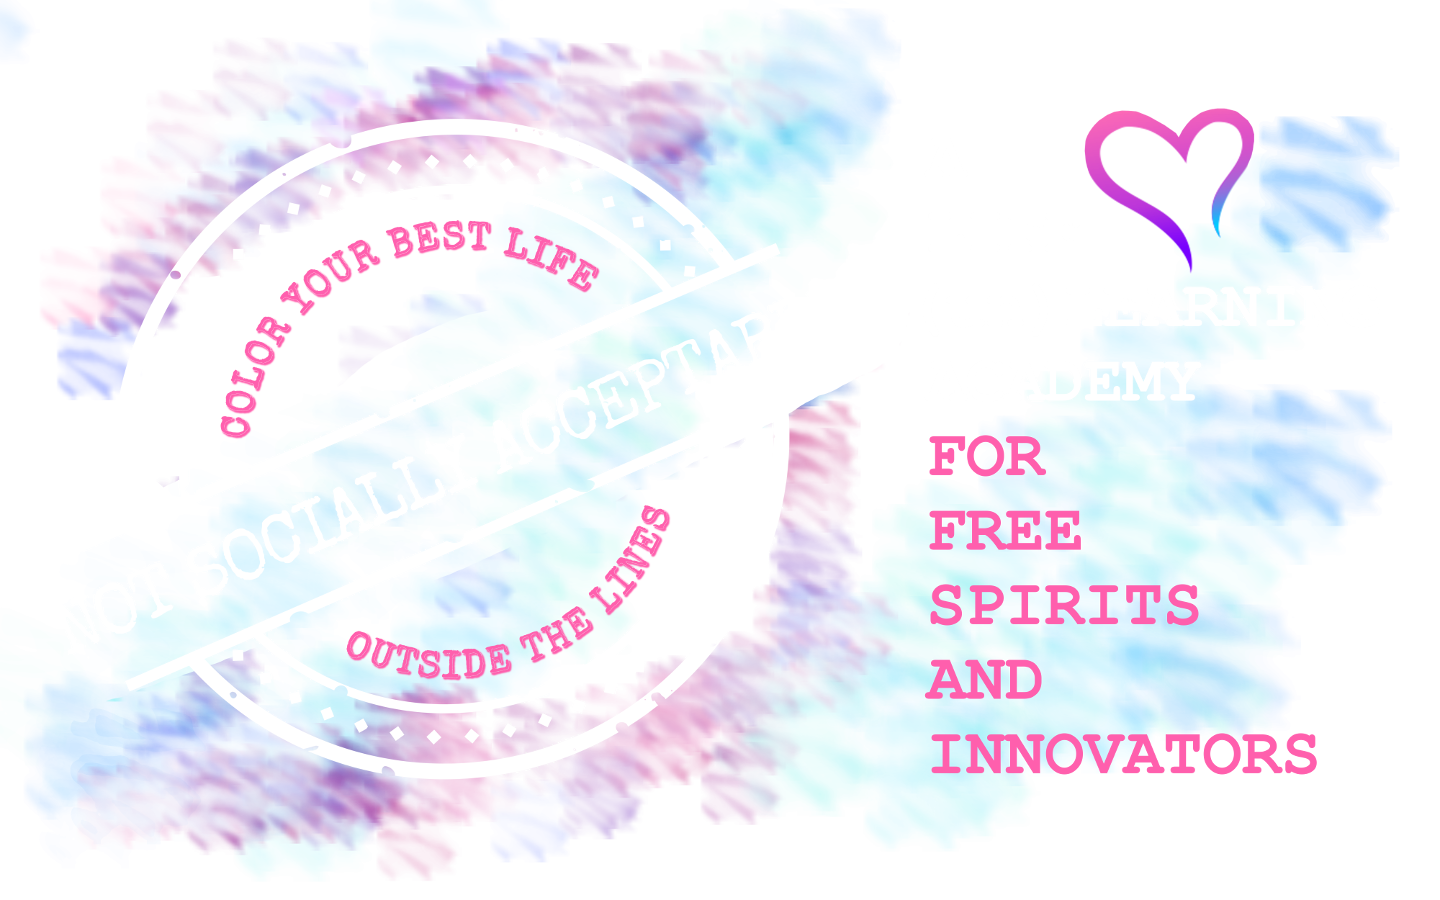 Not Socially Acceptable: A Life Academy for Free Spirits and Innovators